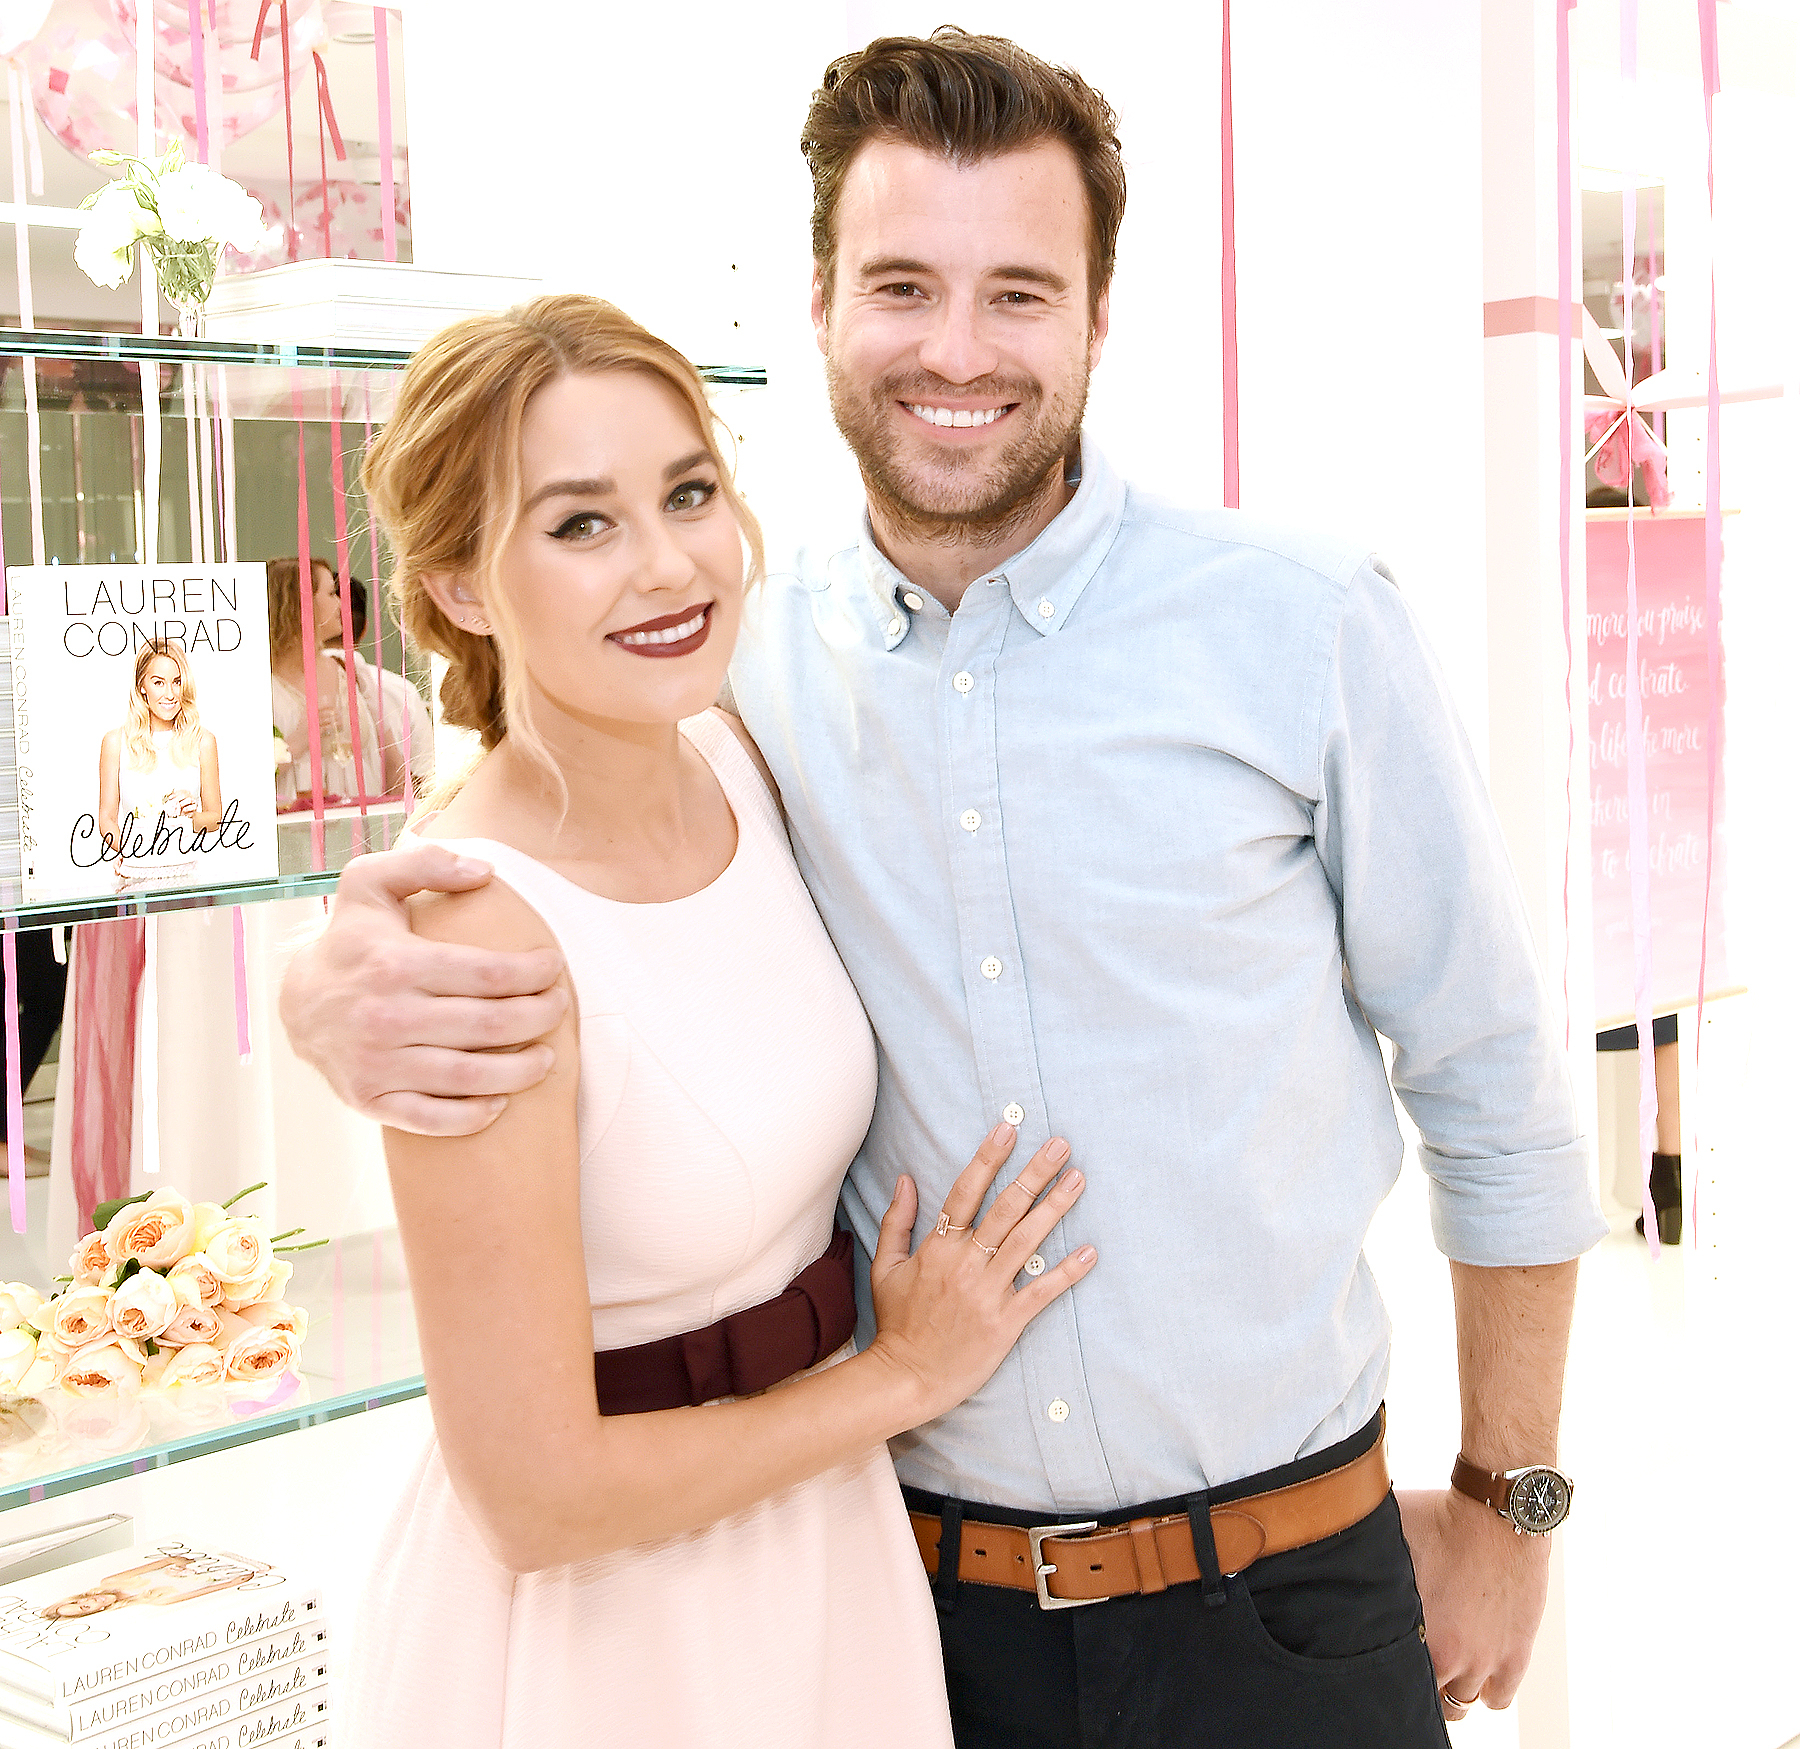 Lauren Conrad Lauren Conrad First Met Her Husband When She Was 16